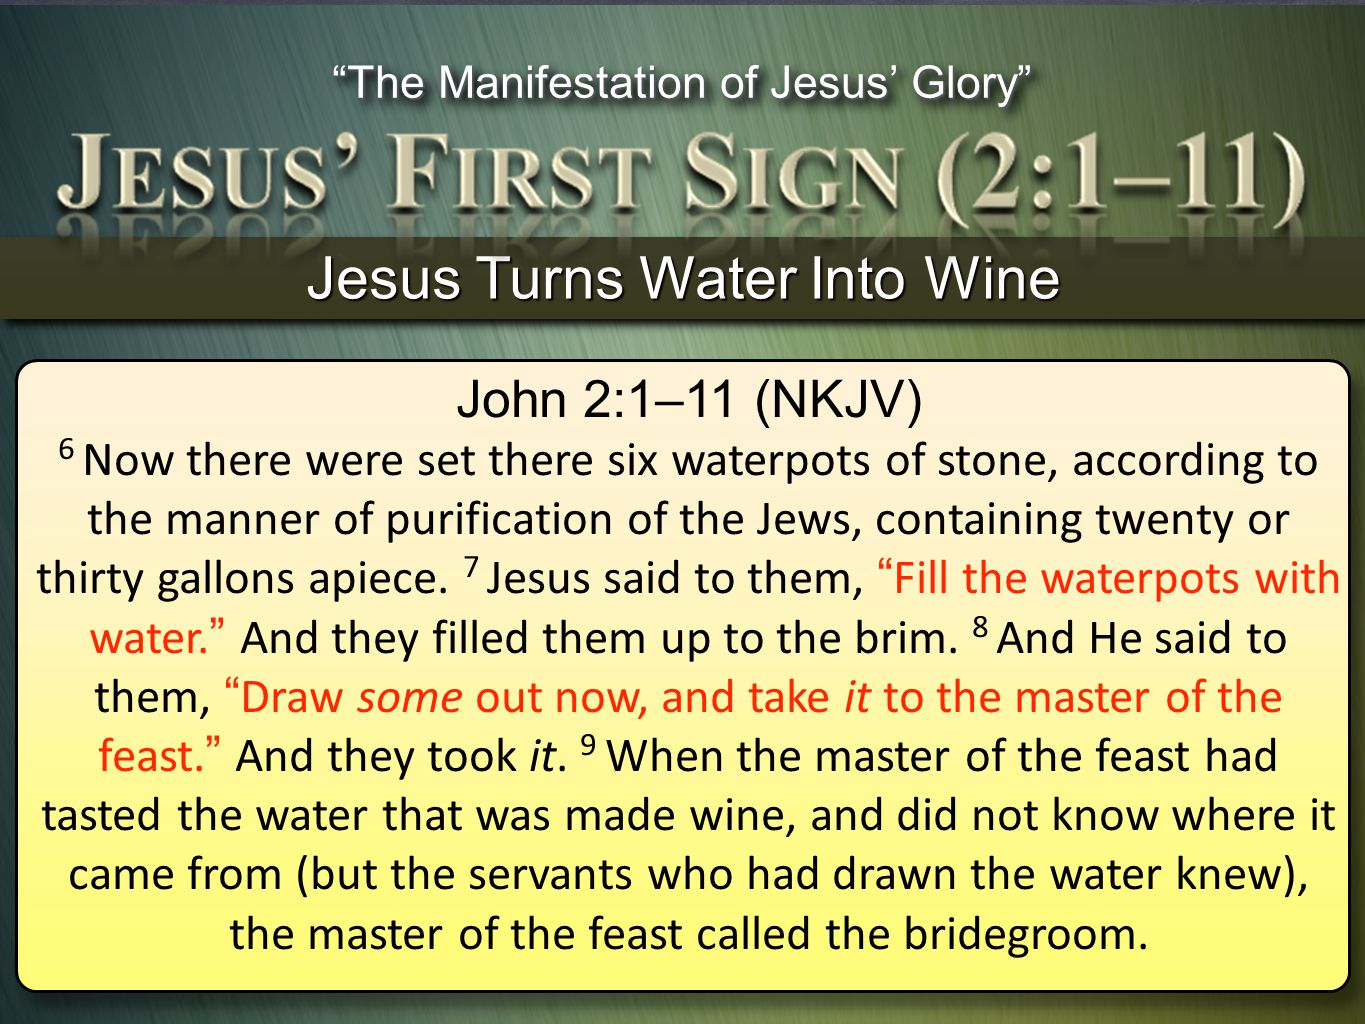 Jesus Turns Water Into Wine John 2:1–11 (NKJV) 6 Now there were set there six waterpots of stone, according to the manner of purification of the Jews,